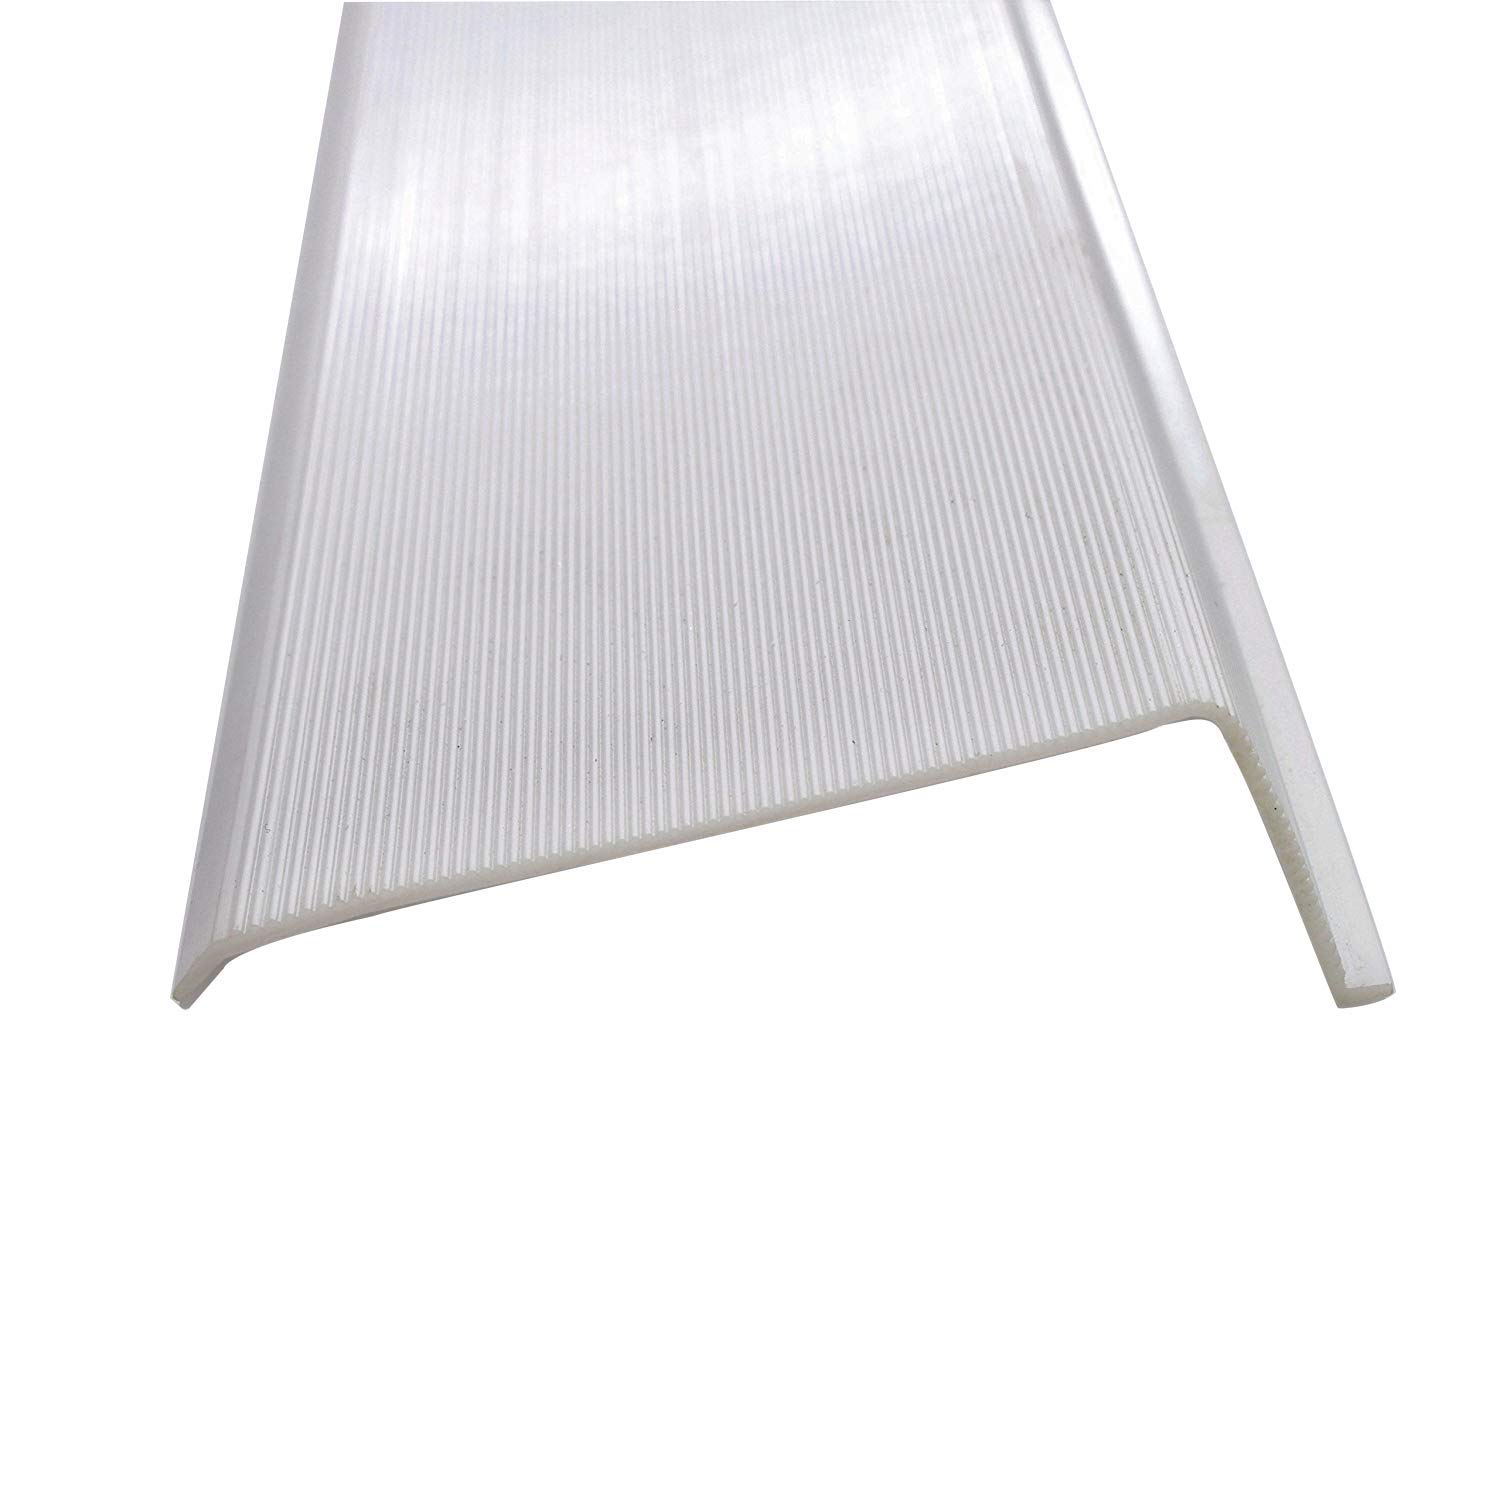 21'' Inch Lens Diffuser Under Cabinet Replacement Cover White Ribbed (Please Check the Size is Correct Before Ordering) the Width is 2-7/8'' the Height is 1'' inch the Length is 21'' by LPOM